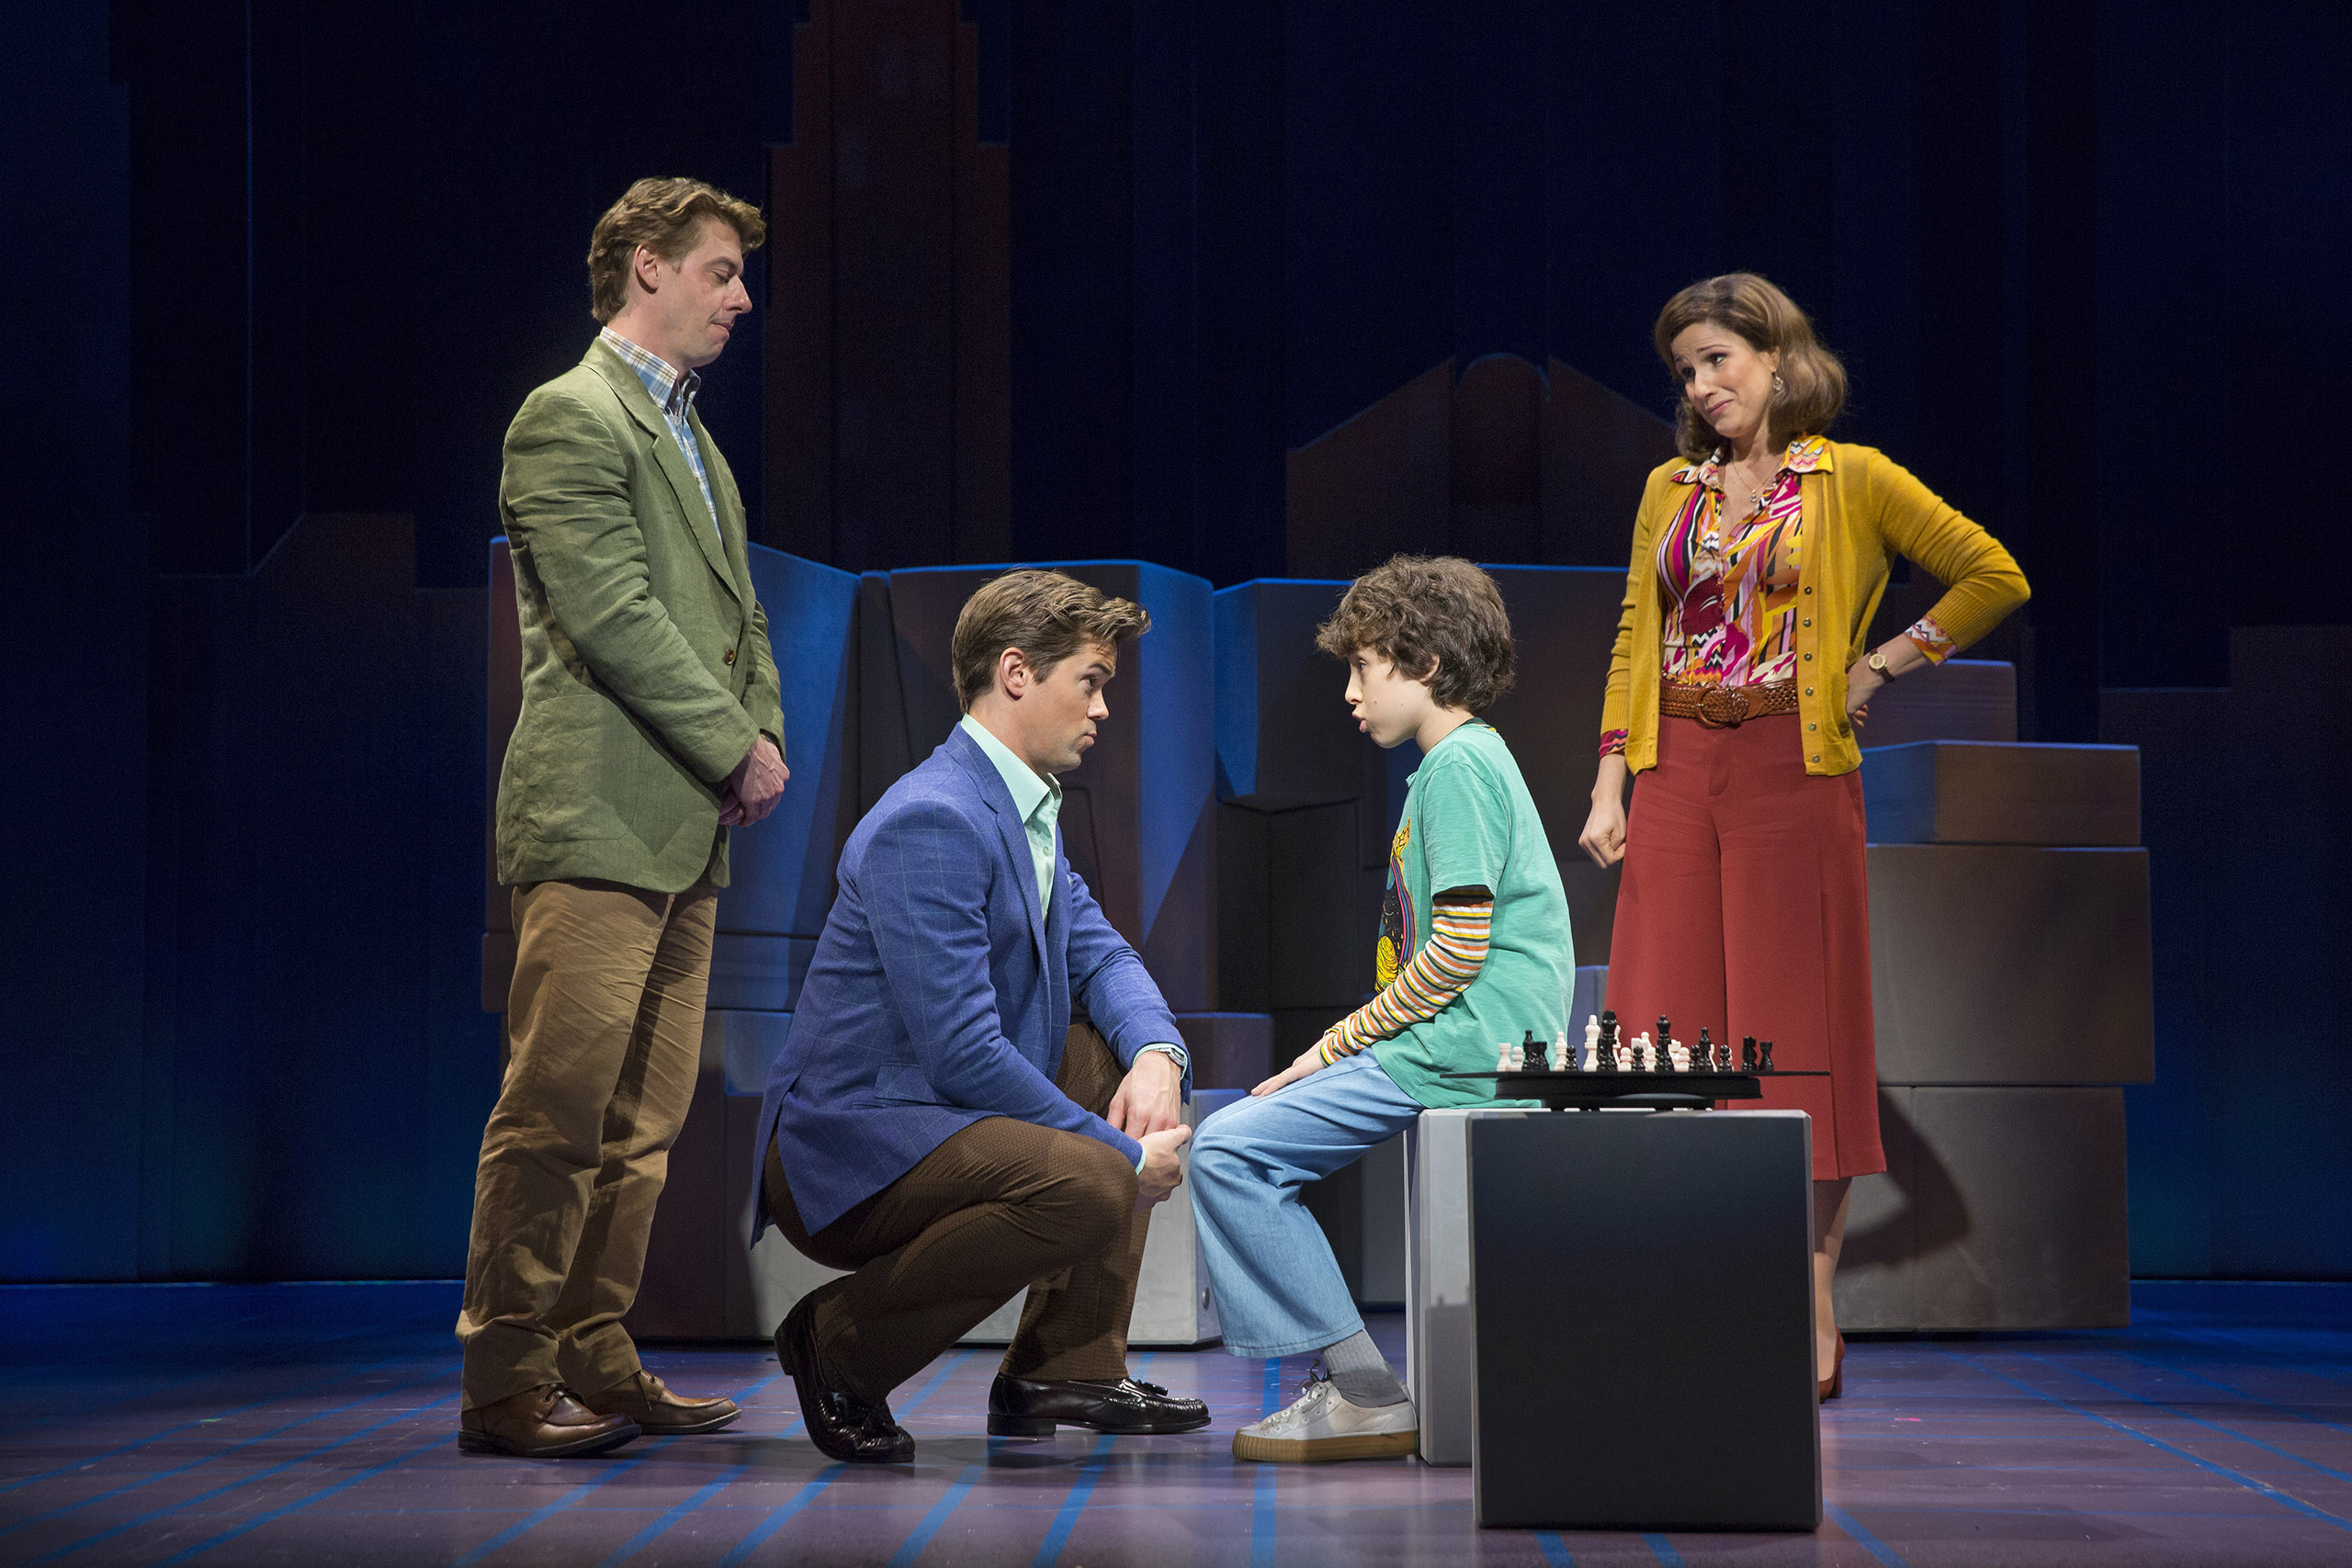 From left: Christian Borle, Andrew Rannells, Anthony Rosenthal and Stephanie J. Block in the new production of  Falsettos  in New York, Oct. 6, 2016. Times have changed for gay rights, leading the makers of ?Falsettos  to wonder how the show will be received compared with its Broadway debut in 1992. (Sara Krulwich/The New York Times)